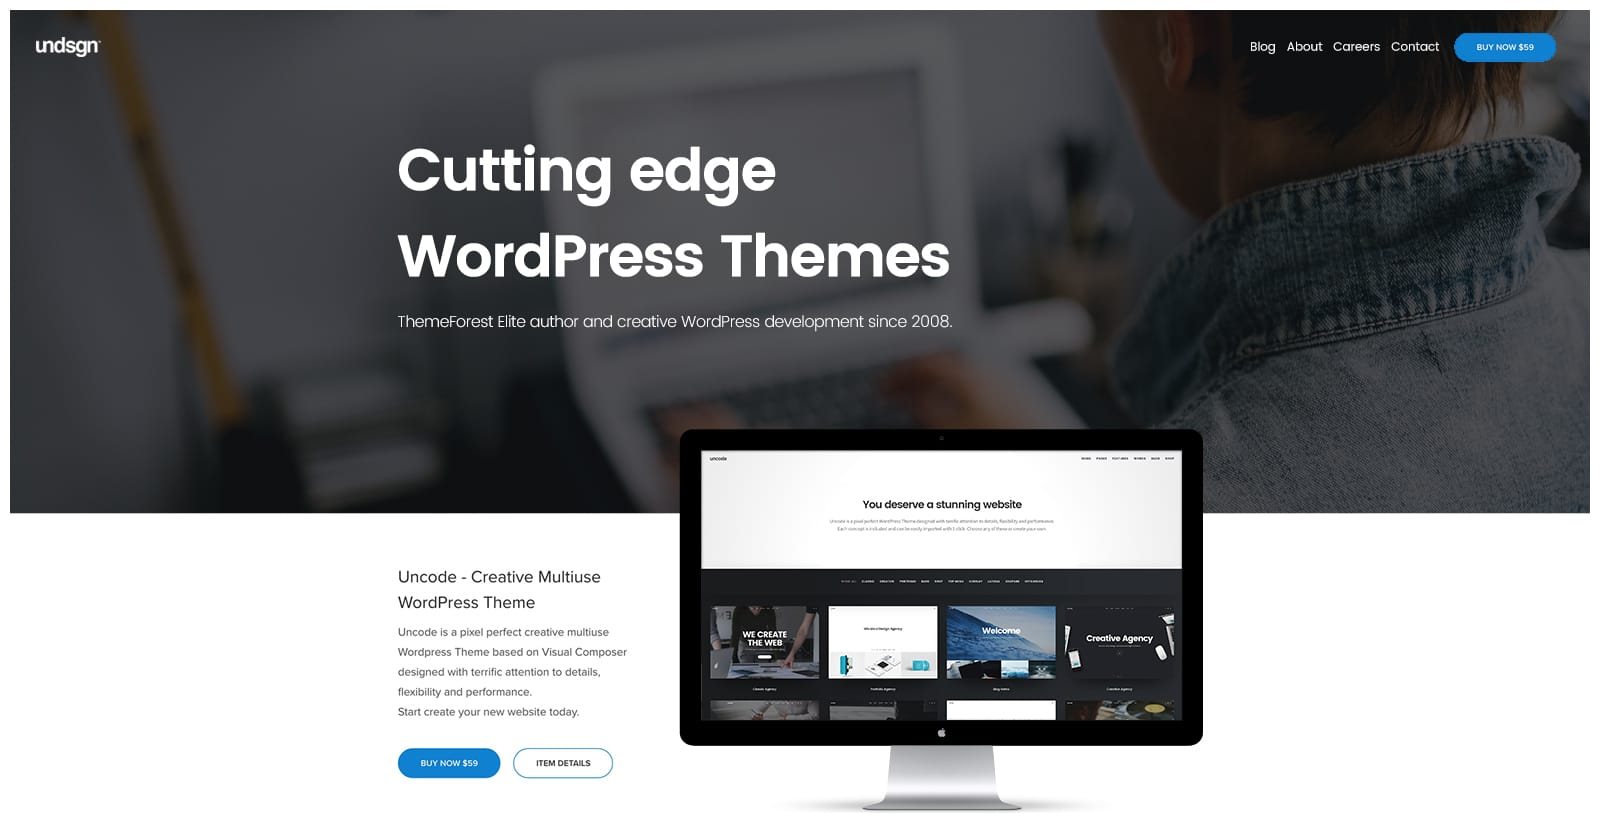 Undsgn™ - ThemeForest Power Elite Author creator of the popular